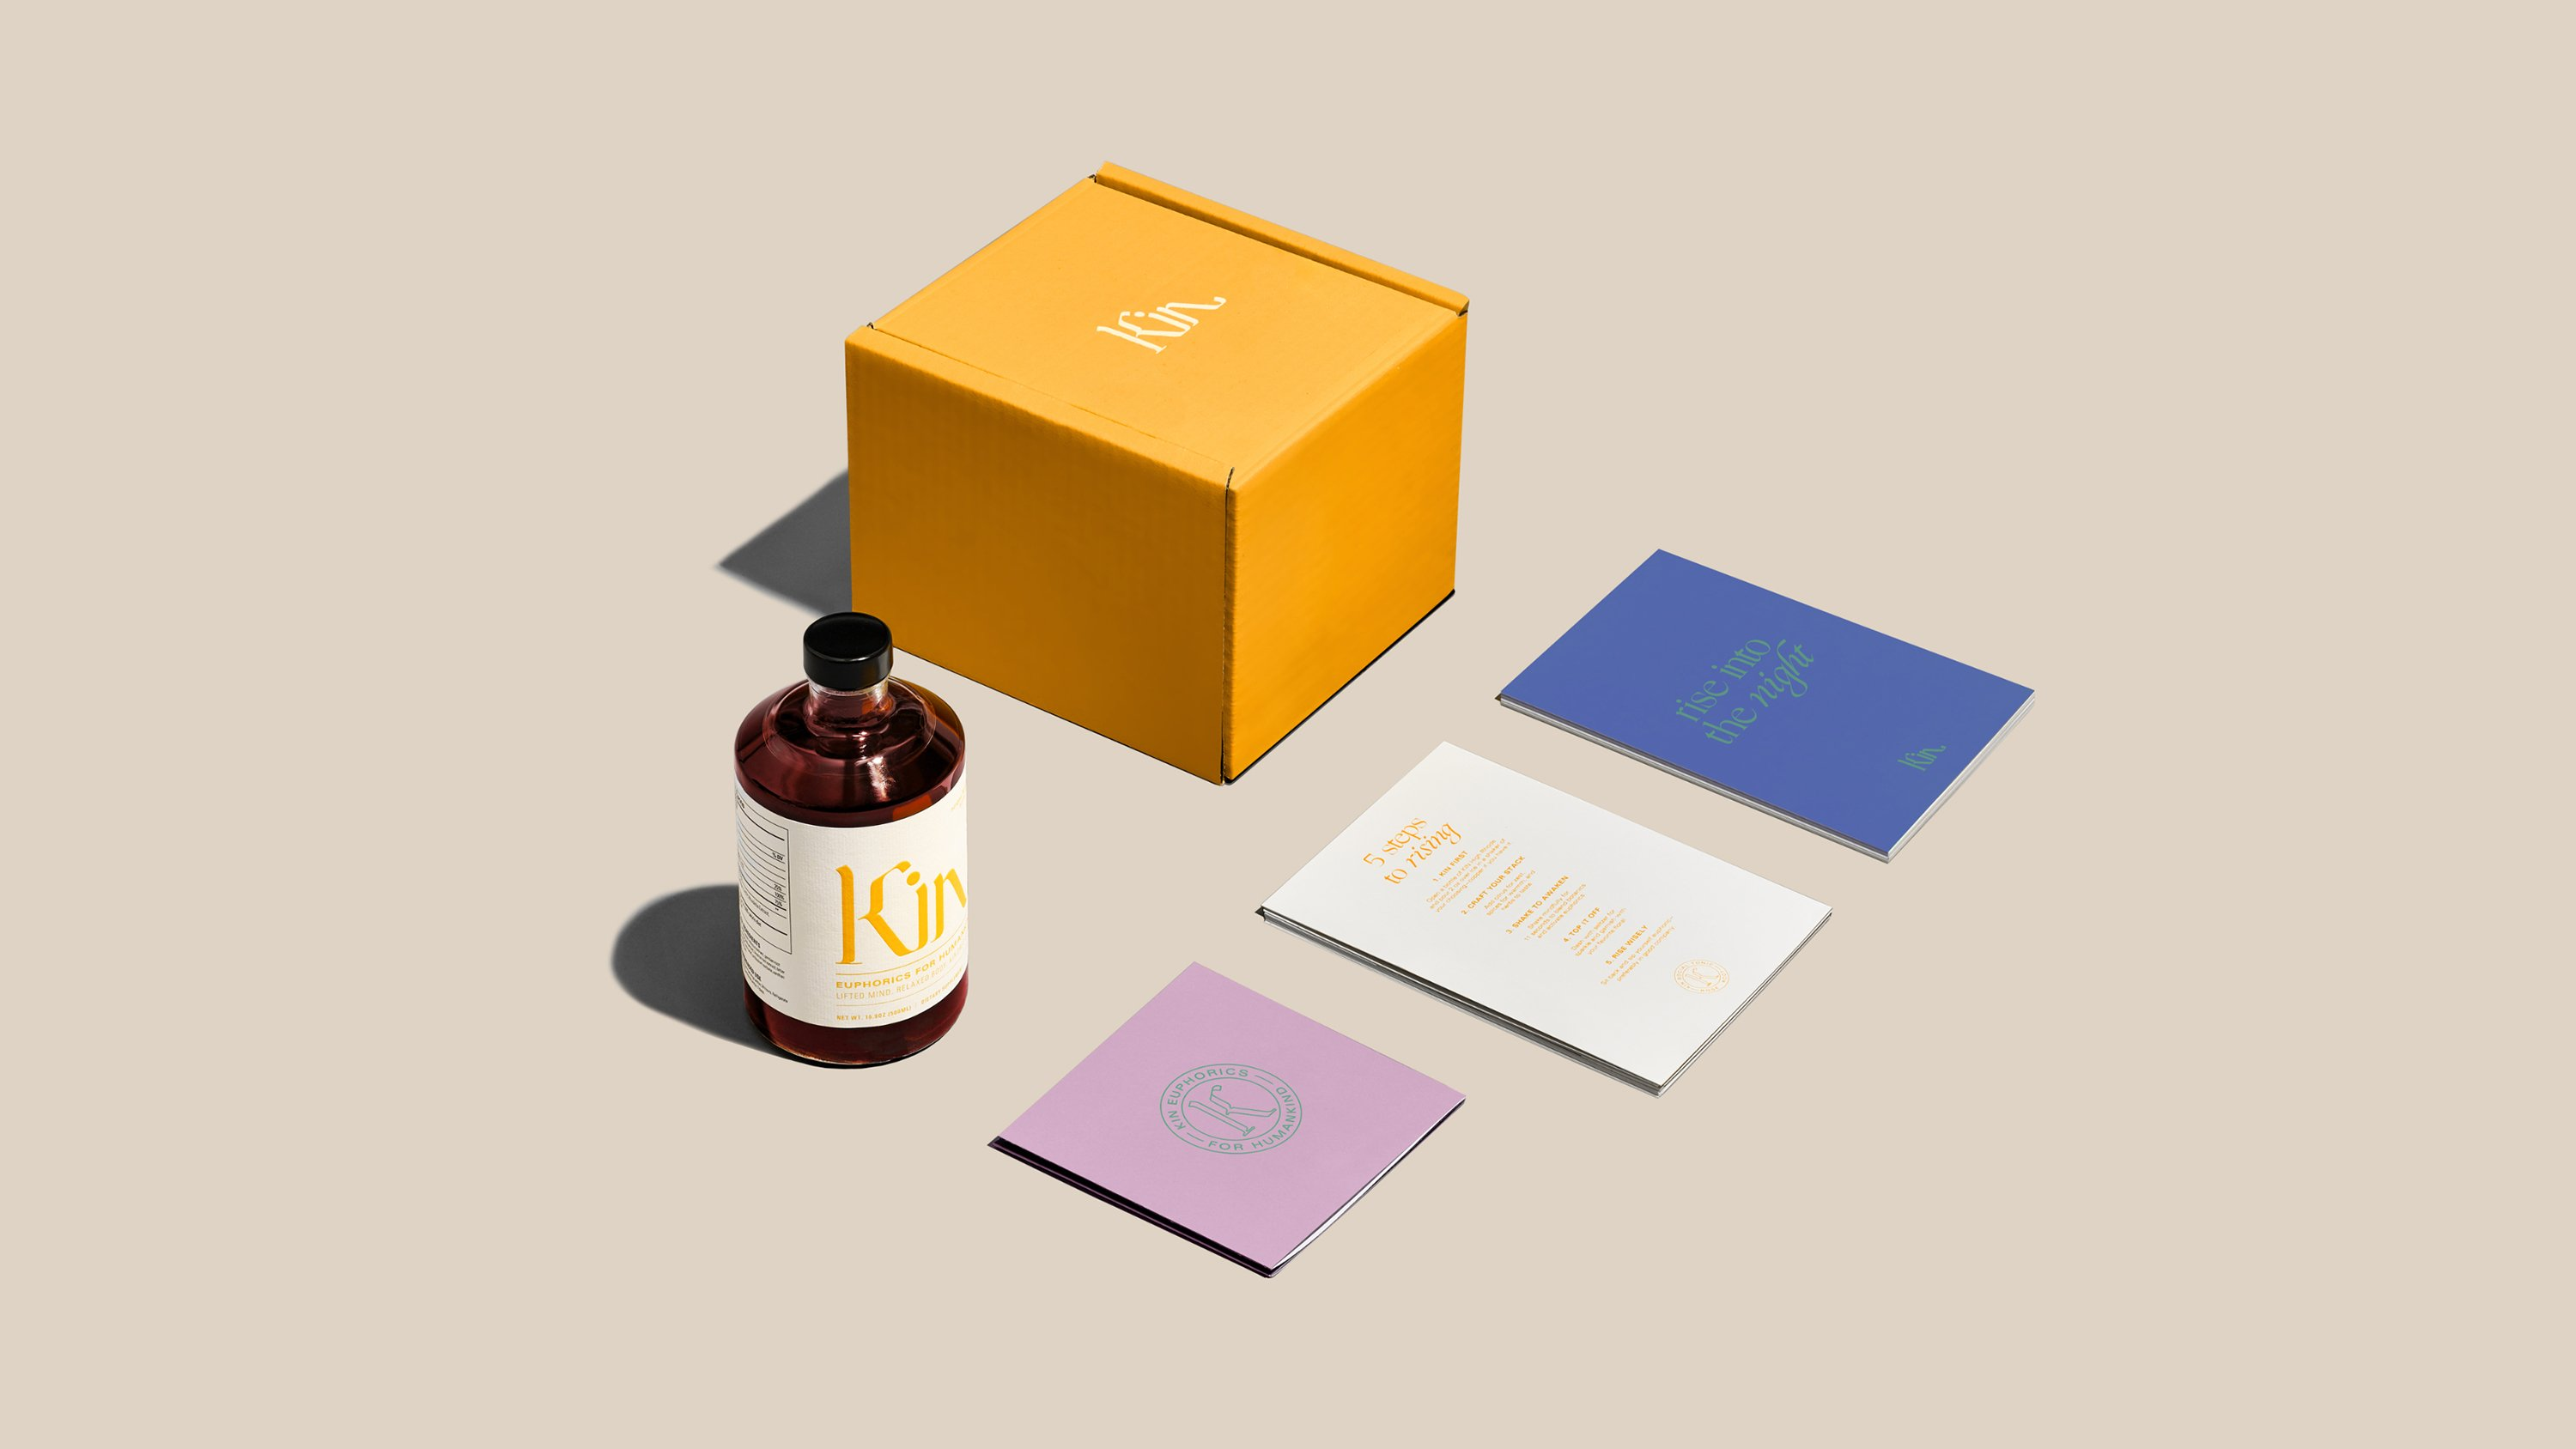 Kin Euphorics branding and packaging suite, in partnership with RoAndCo